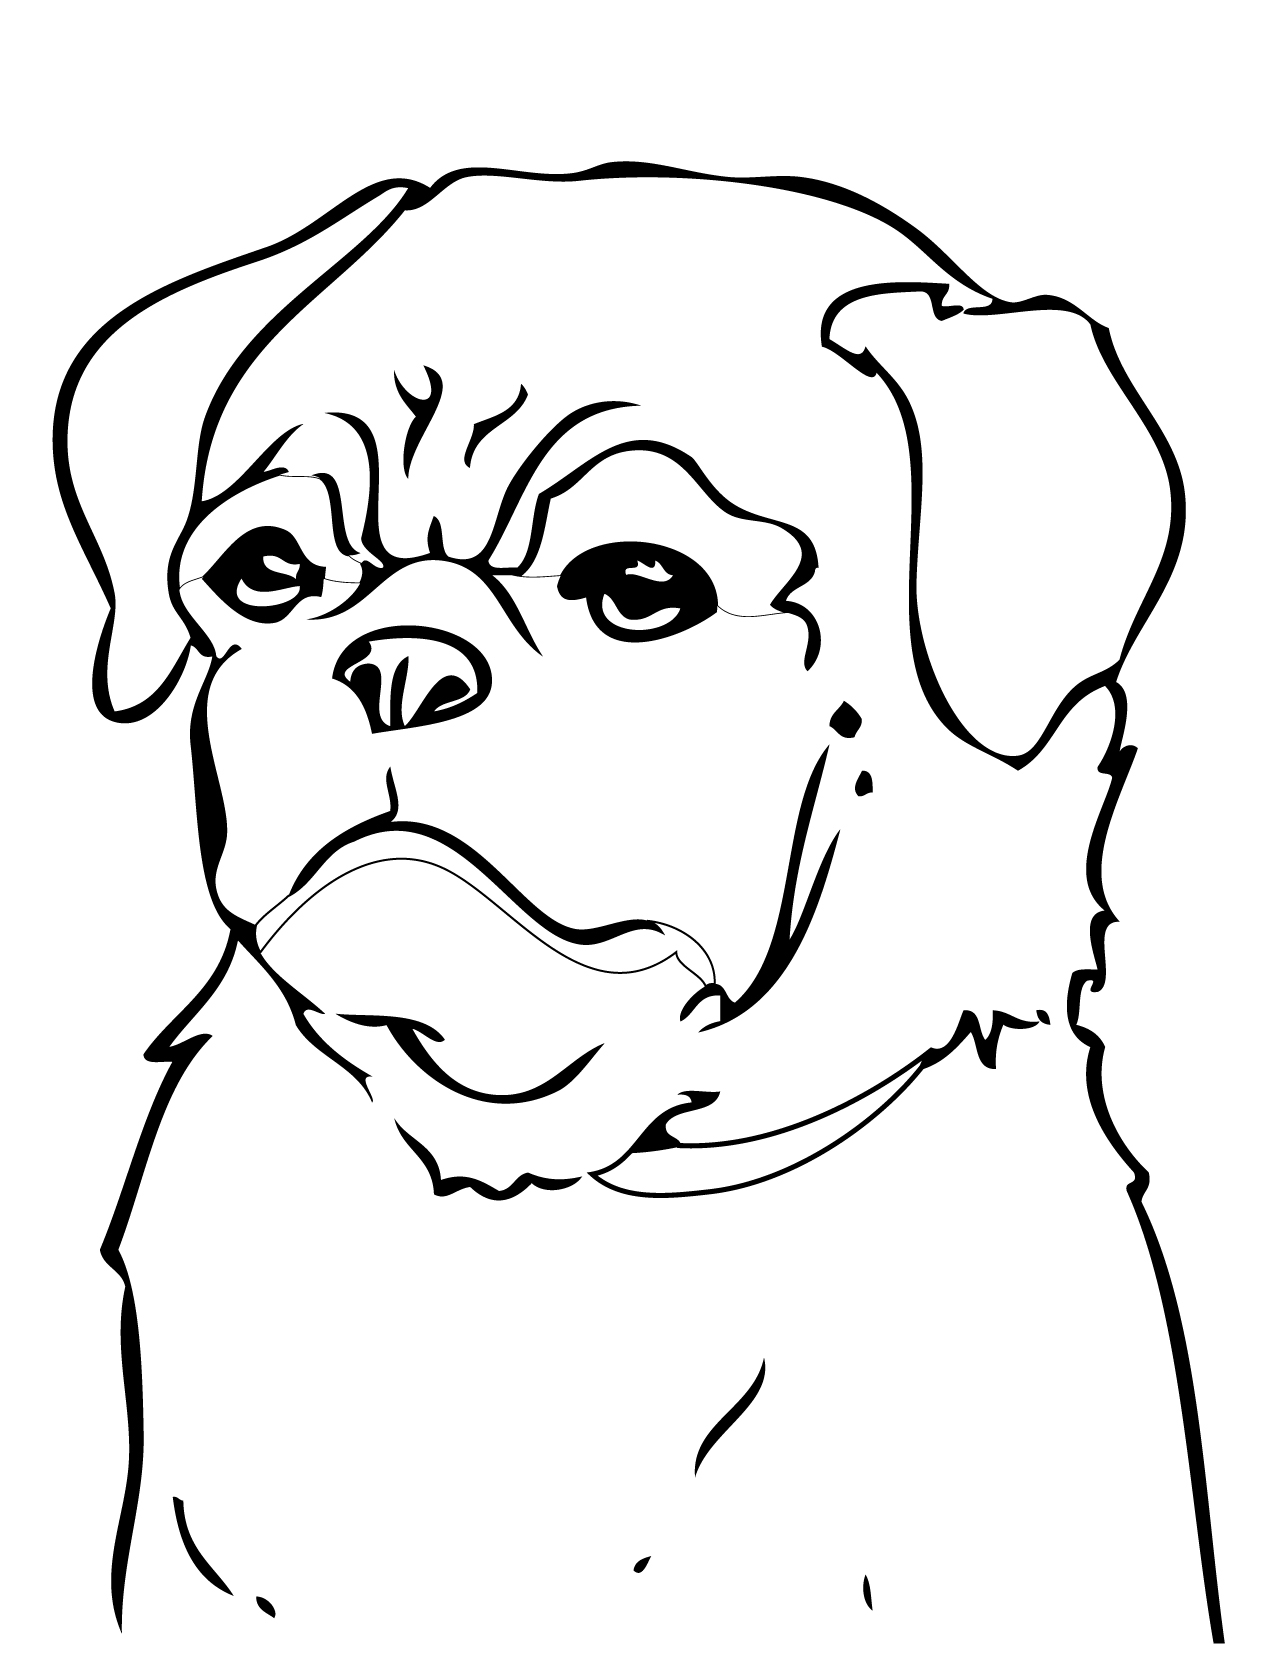 puppy pictures for coloring pug coloring pages to download and print for free for puppy pictures coloring